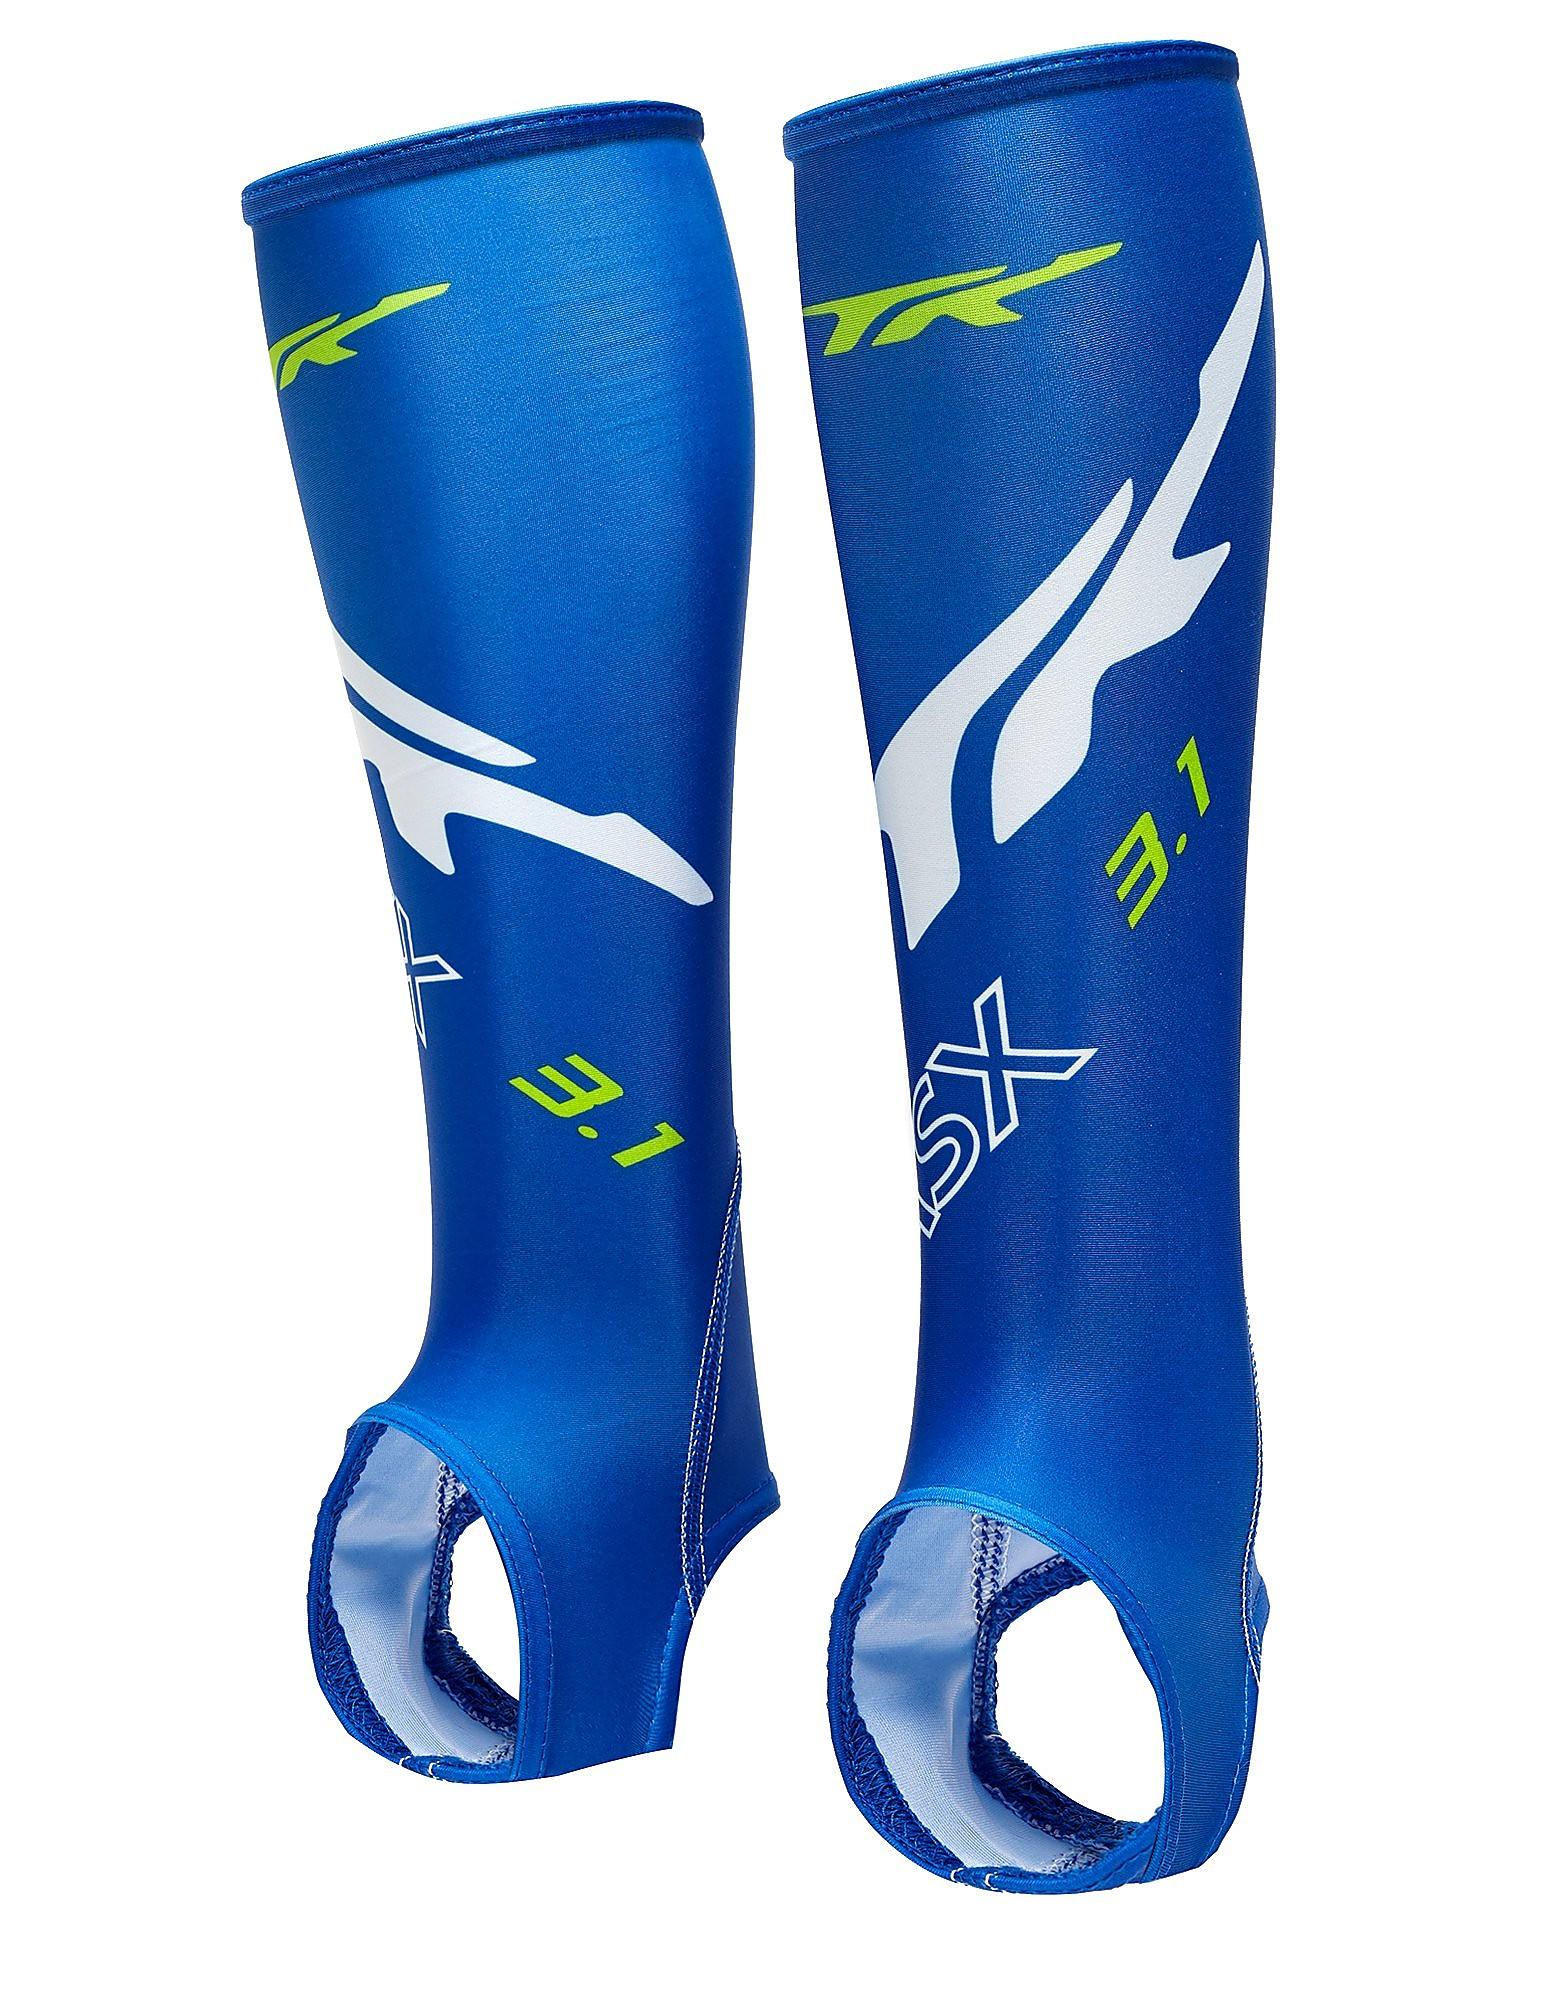 TK Hockey Total Three Asx 3.1 Shin Guard